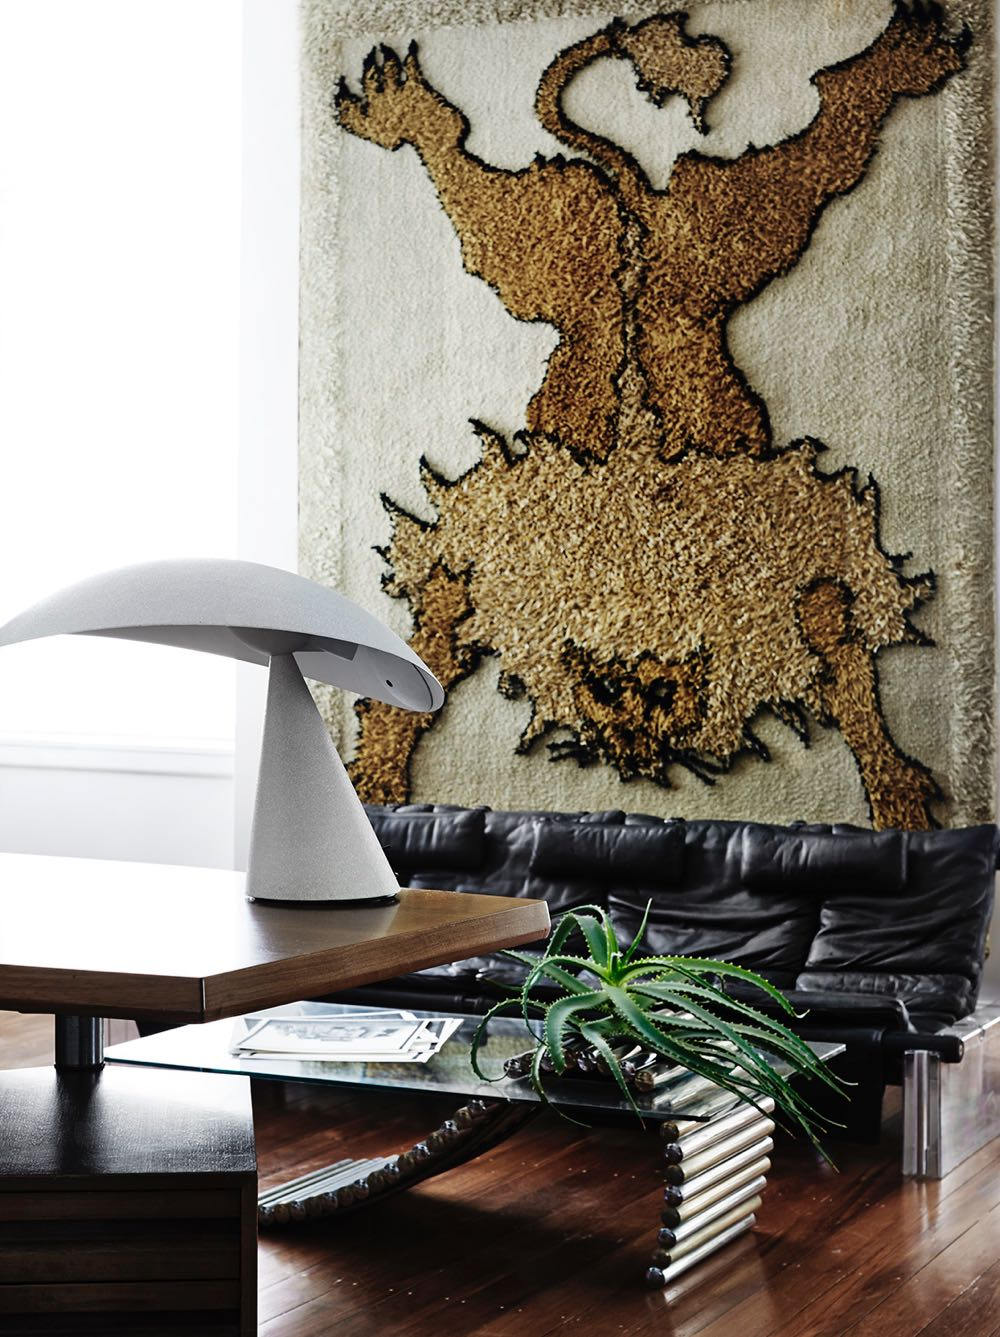 Don Cameron's home is a testament to his knowledge of vintage furniture, lighting and rugs but it goes further....its the way he combines the objects that is extraordinary - effortless yet exciting. Photography by Sharyn Cairns.